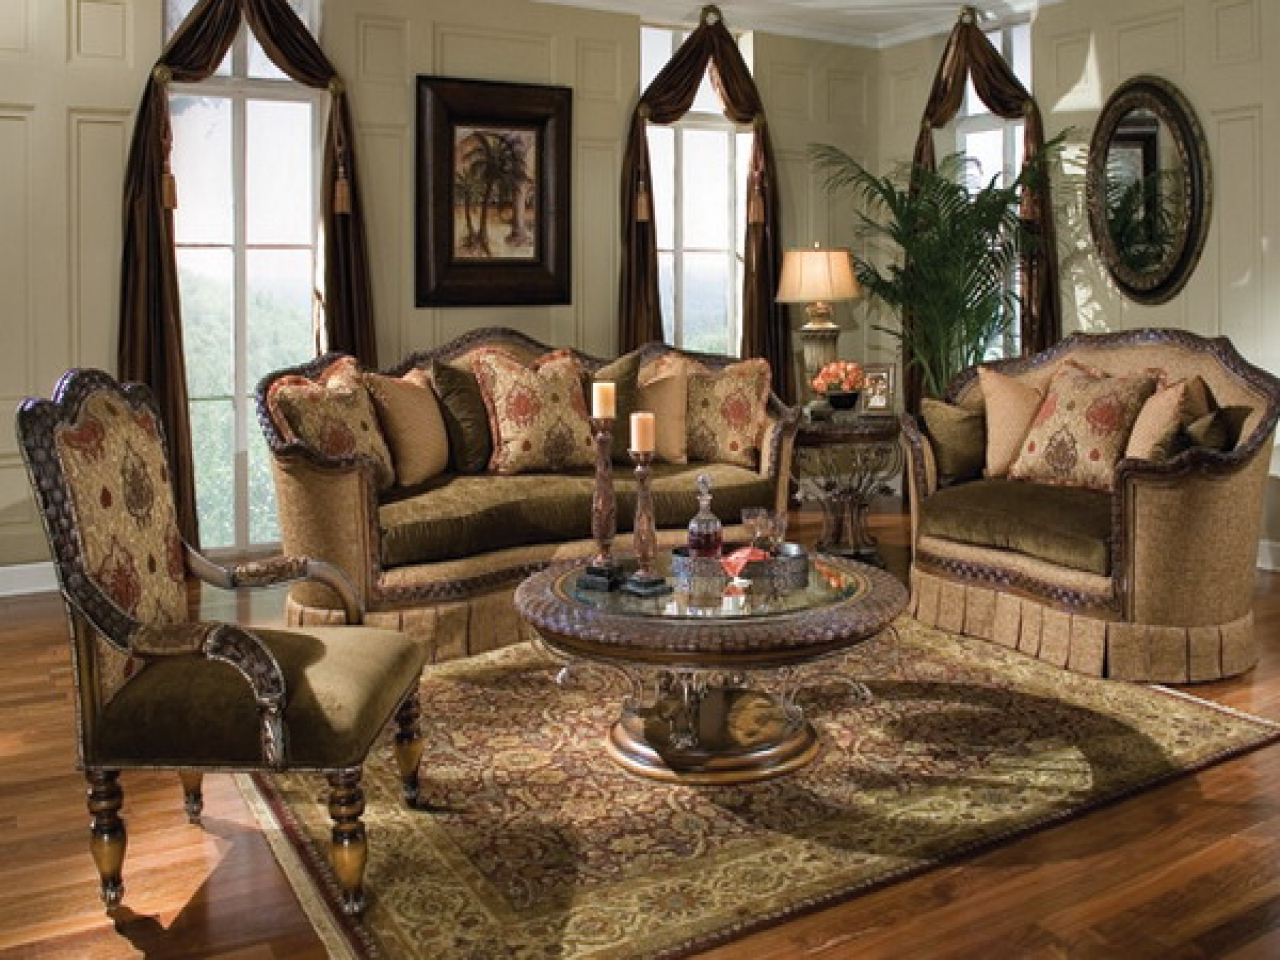 classic italian decor living room furniture arrangements ideas